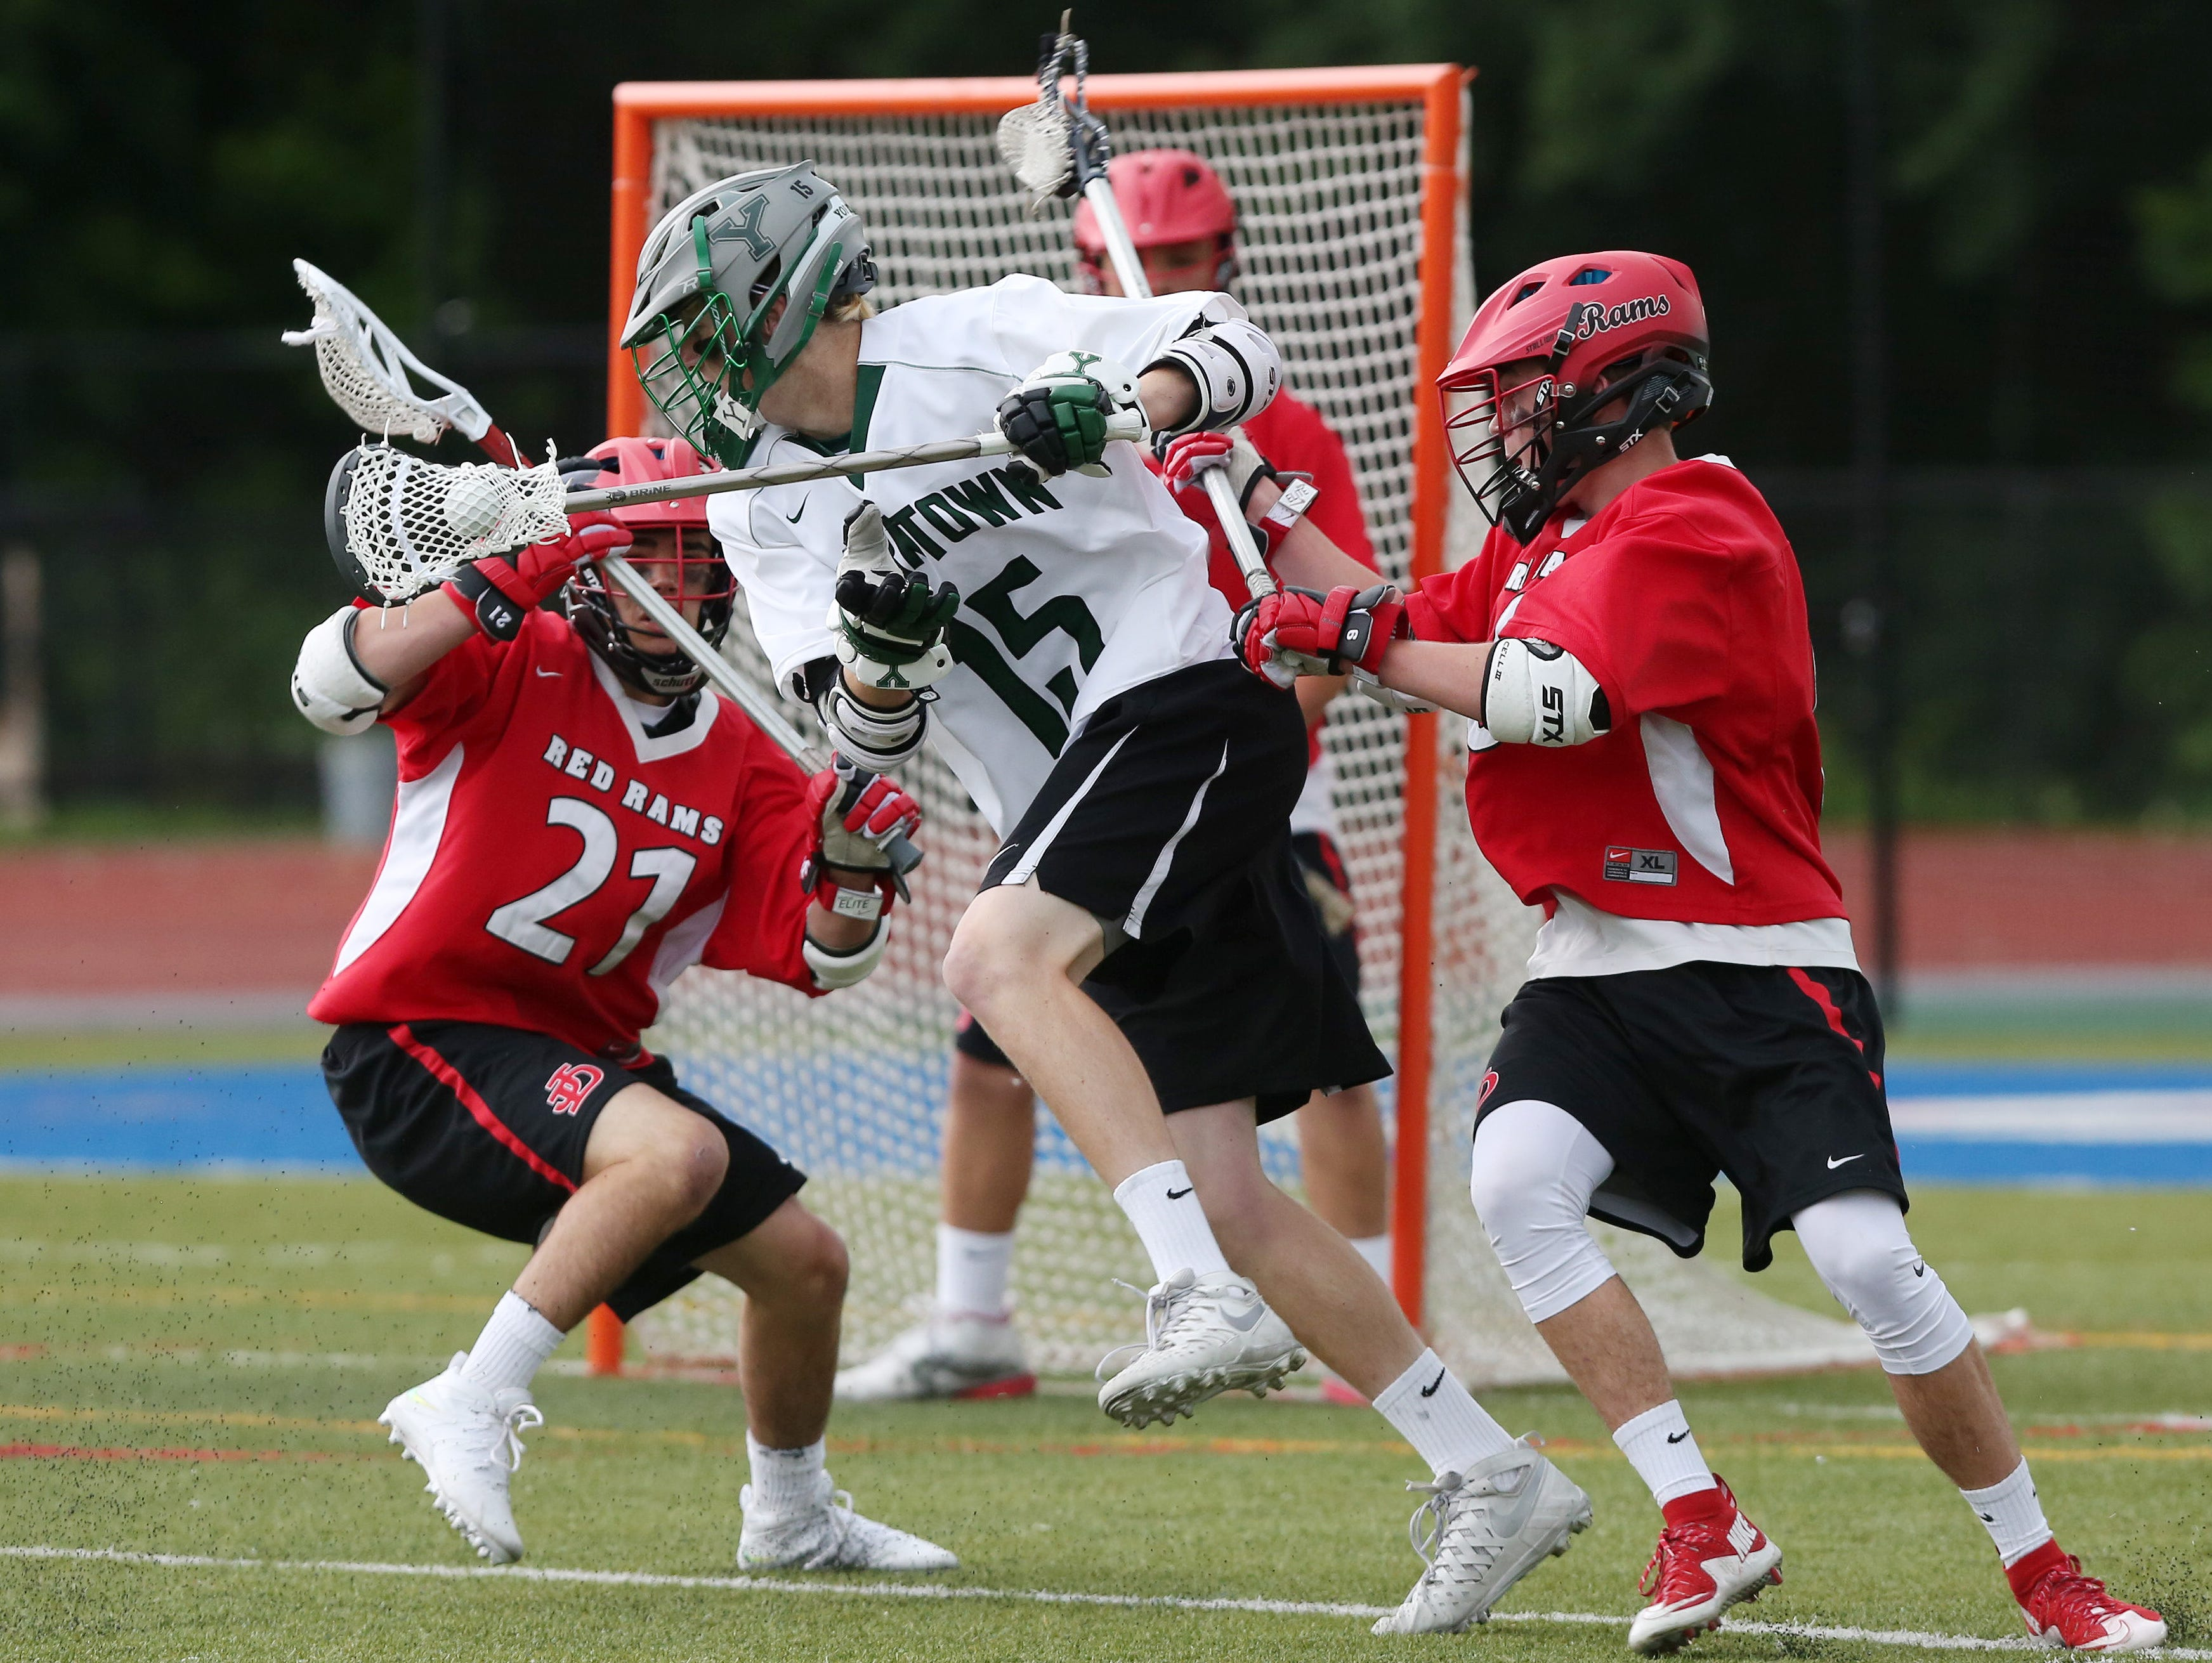 Yorktown's Kyle Casey (15) tries to drive to the goal in front of Jamesville-Dewitt's Casey Platonic (21) during the NYSPHSAA Class B championship lacrosse game at Middletown High School June 11, 2016. Jamesville-Dewitt won the game 9-6.